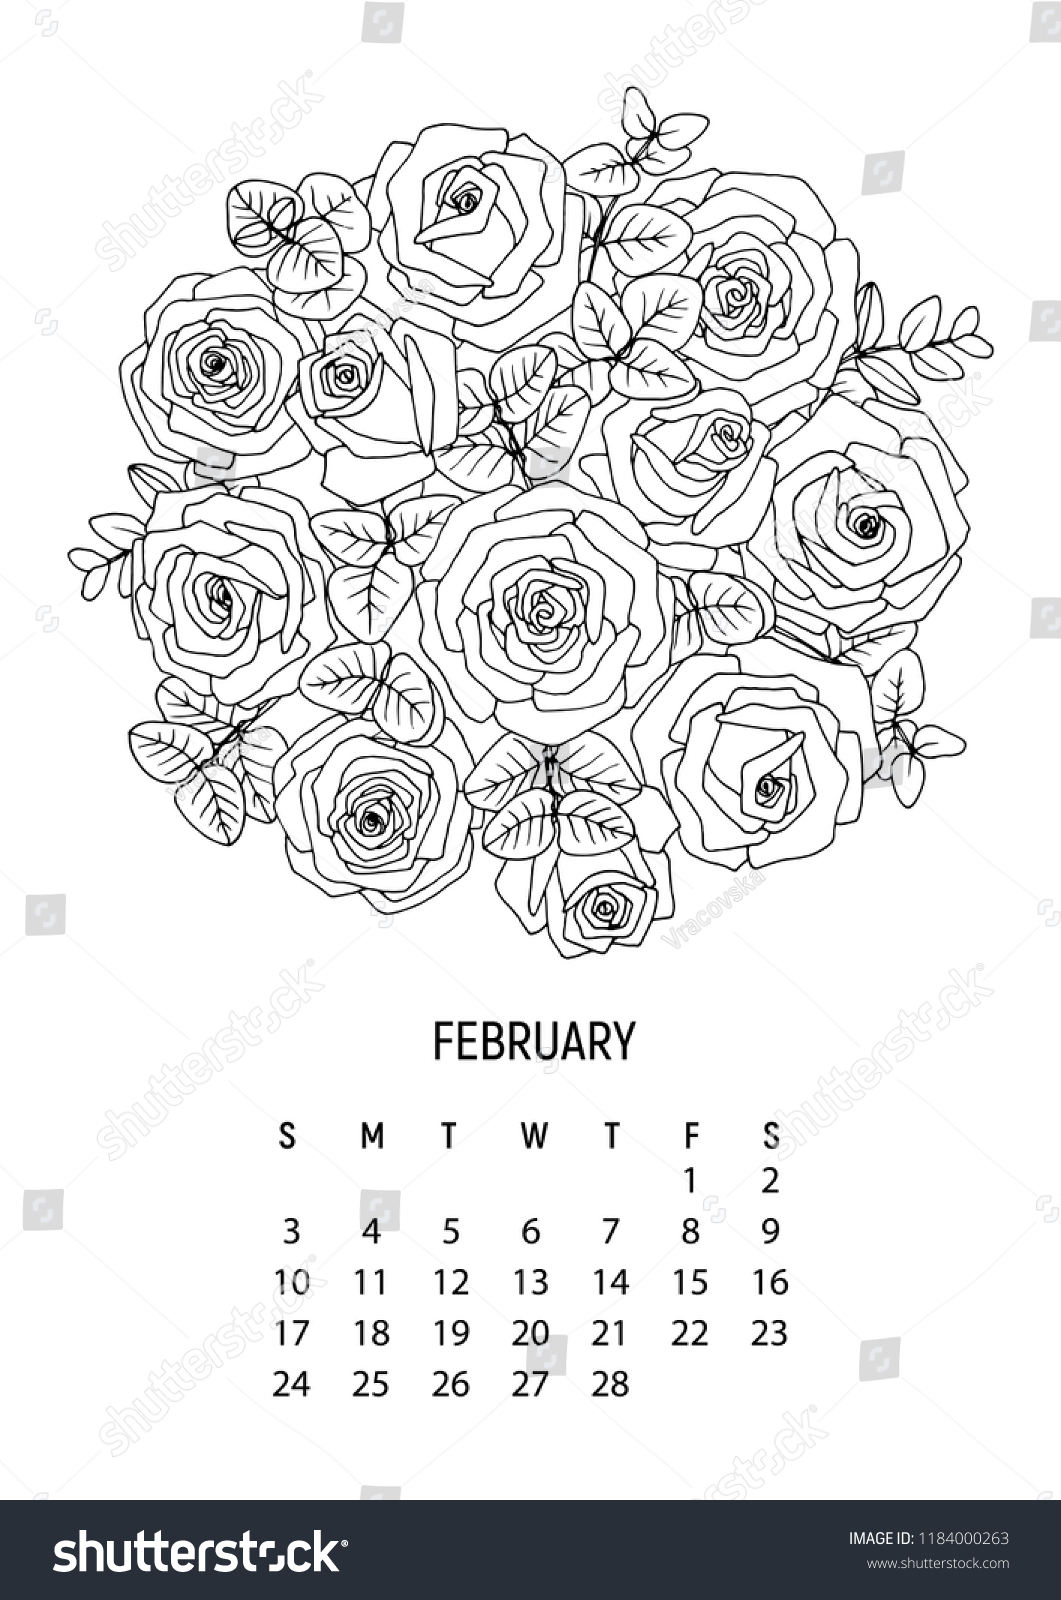 Book It Calendar February 2019 Flower Bouquet Coloring Calendar Page 2 Stock Vector (Royalty Free